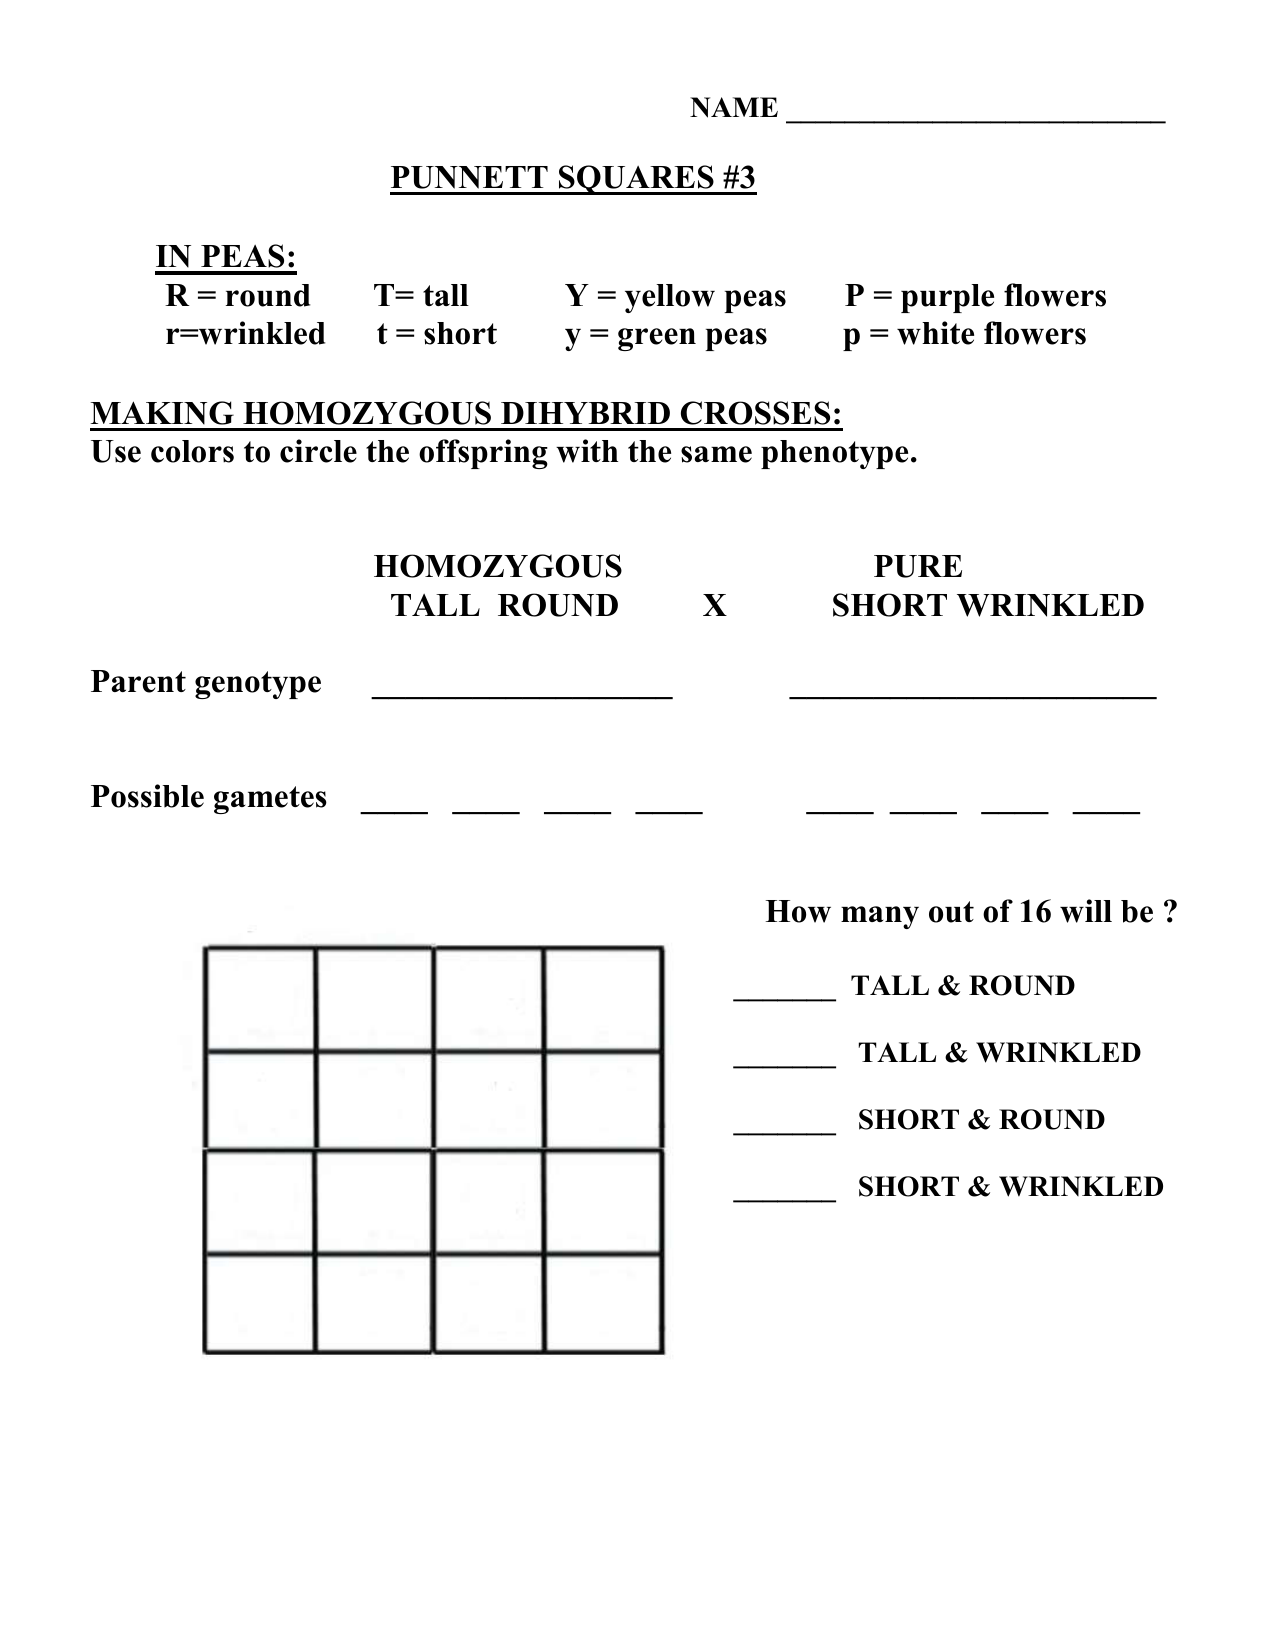 Worksheets Punnett Square Worksheet 1 Answer Key punnett square practice 3